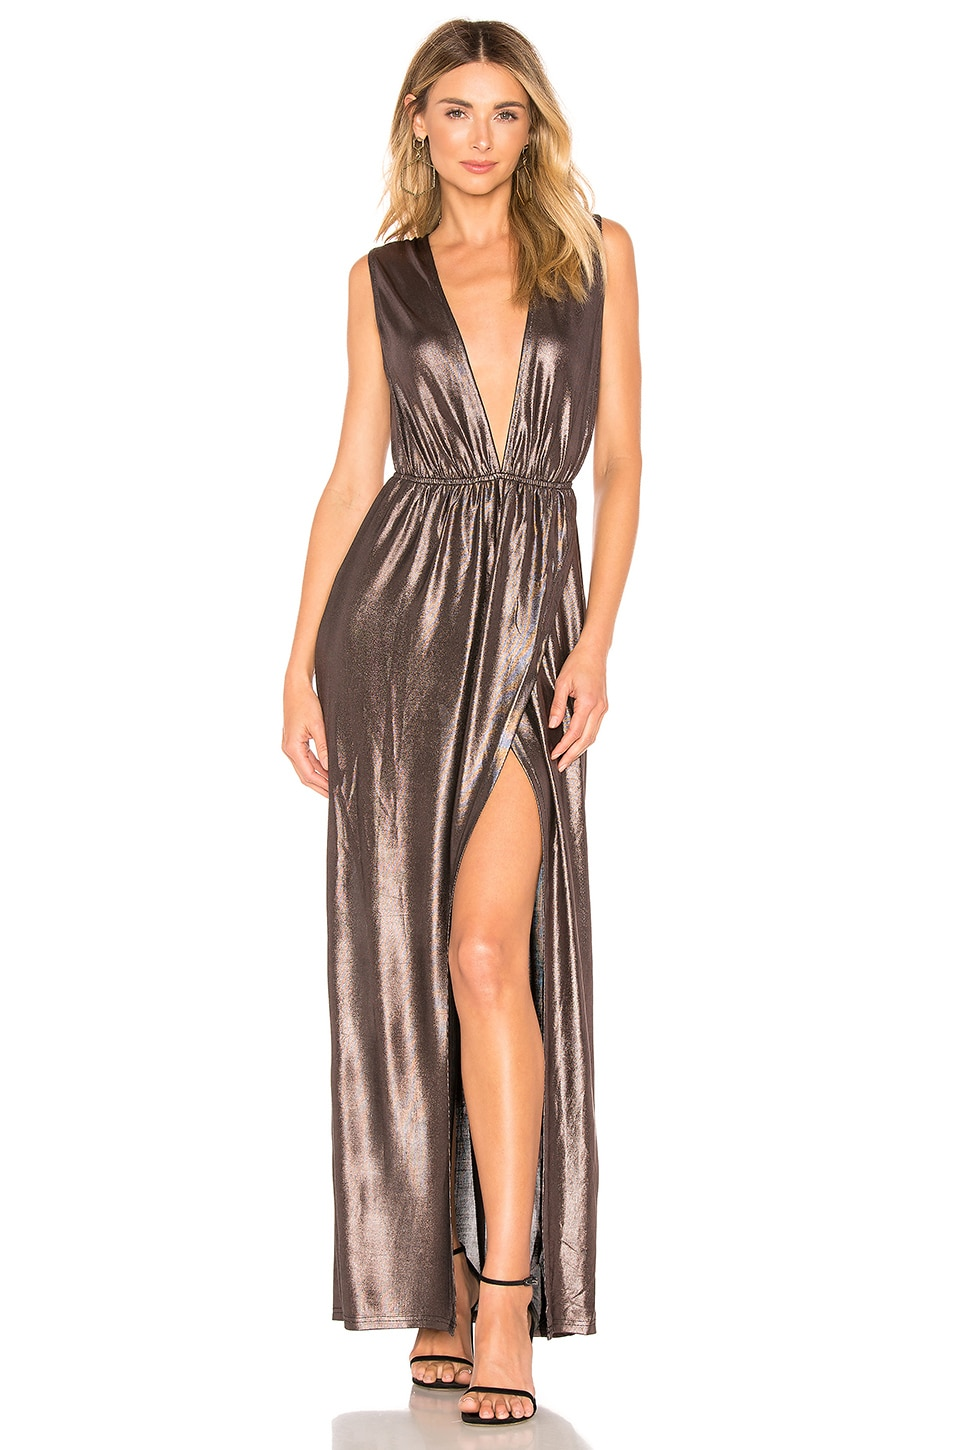 About Us Meredith Plunge Maxi Dress in Metallic Plum